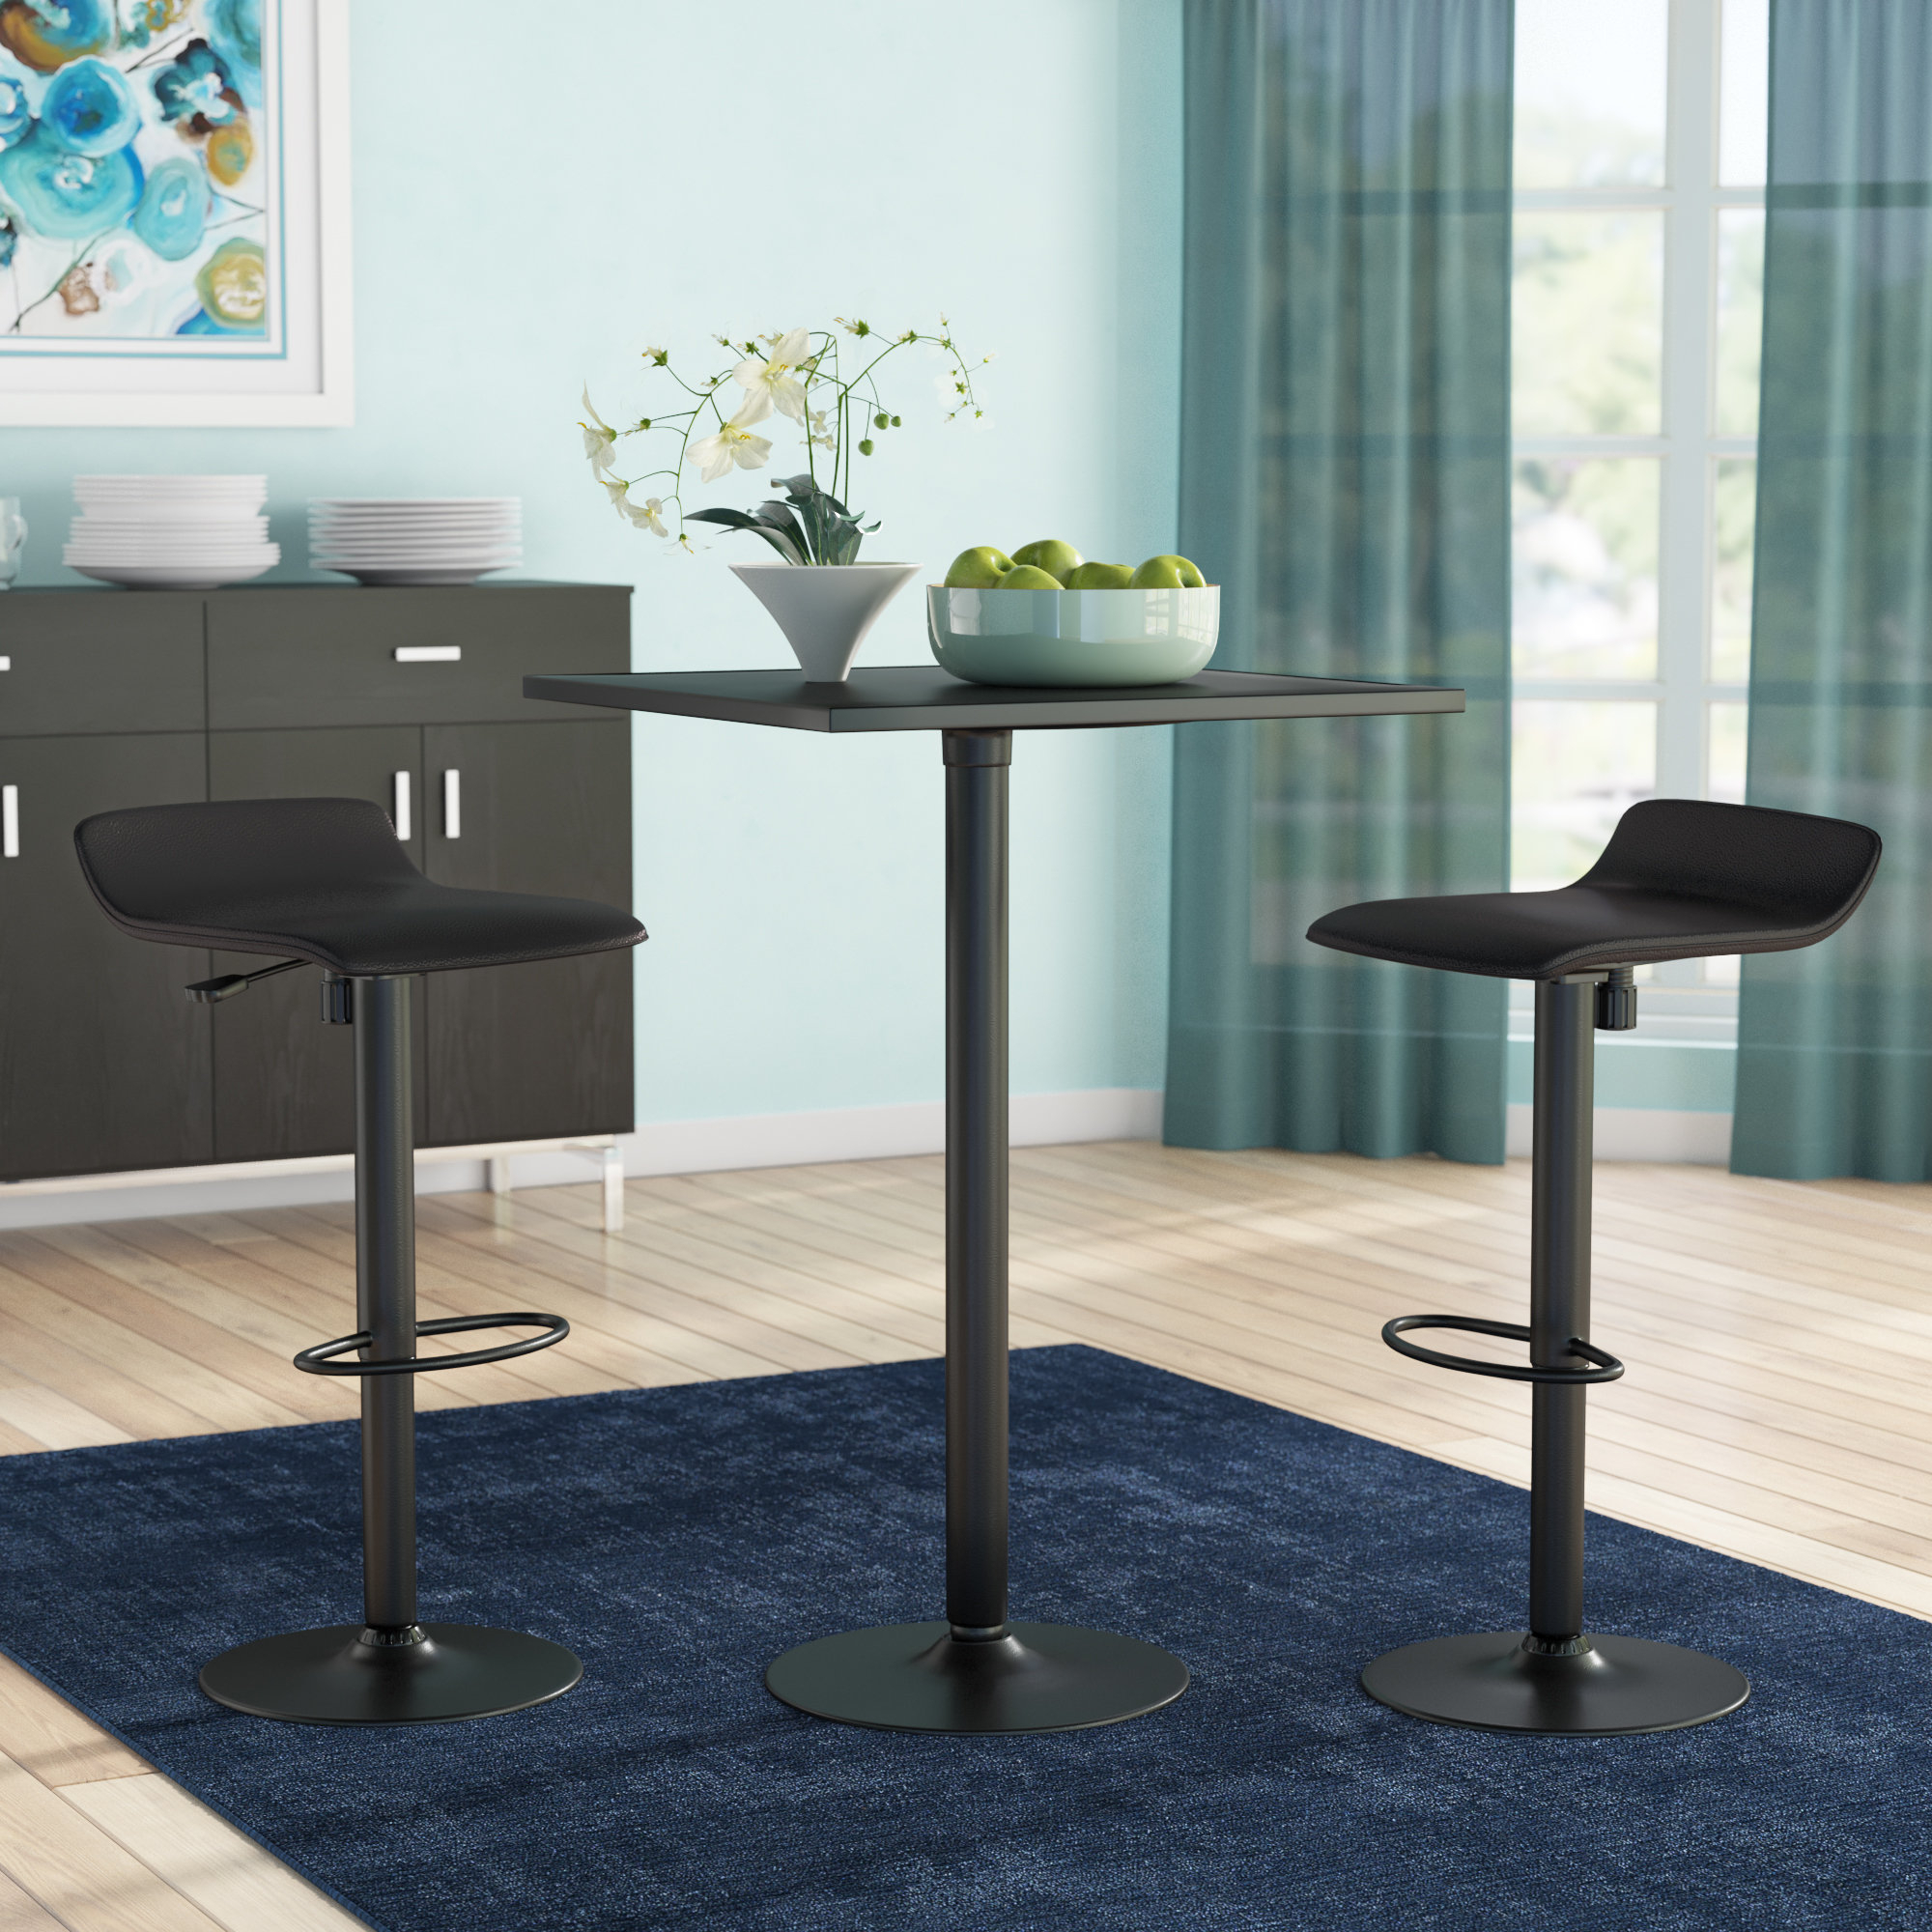 Mizpah 3 Piece Counter Height Dining Sets With Widely Used Zipcode Design Avery 3 Piece Dining Table Set & Reviews (View 8 of 20)